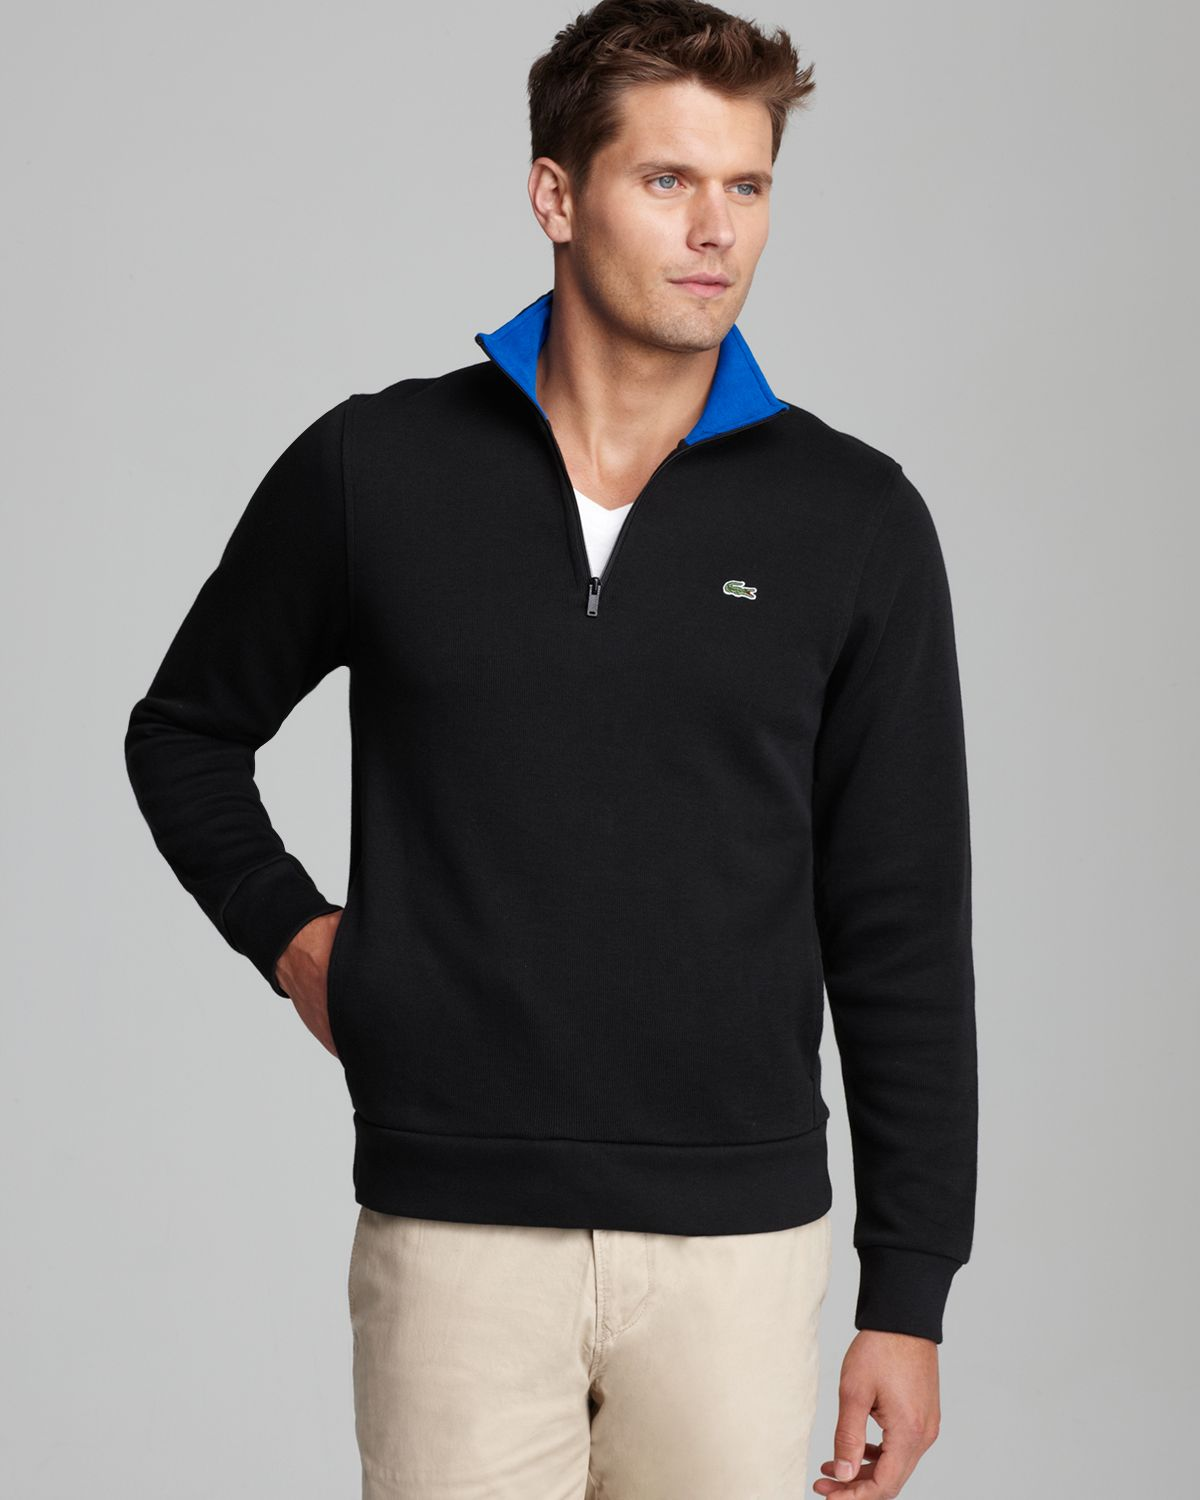 lacoste halfzip pullover sweater in black for men lyst. Black Bedroom Furniture Sets. Home Design Ideas